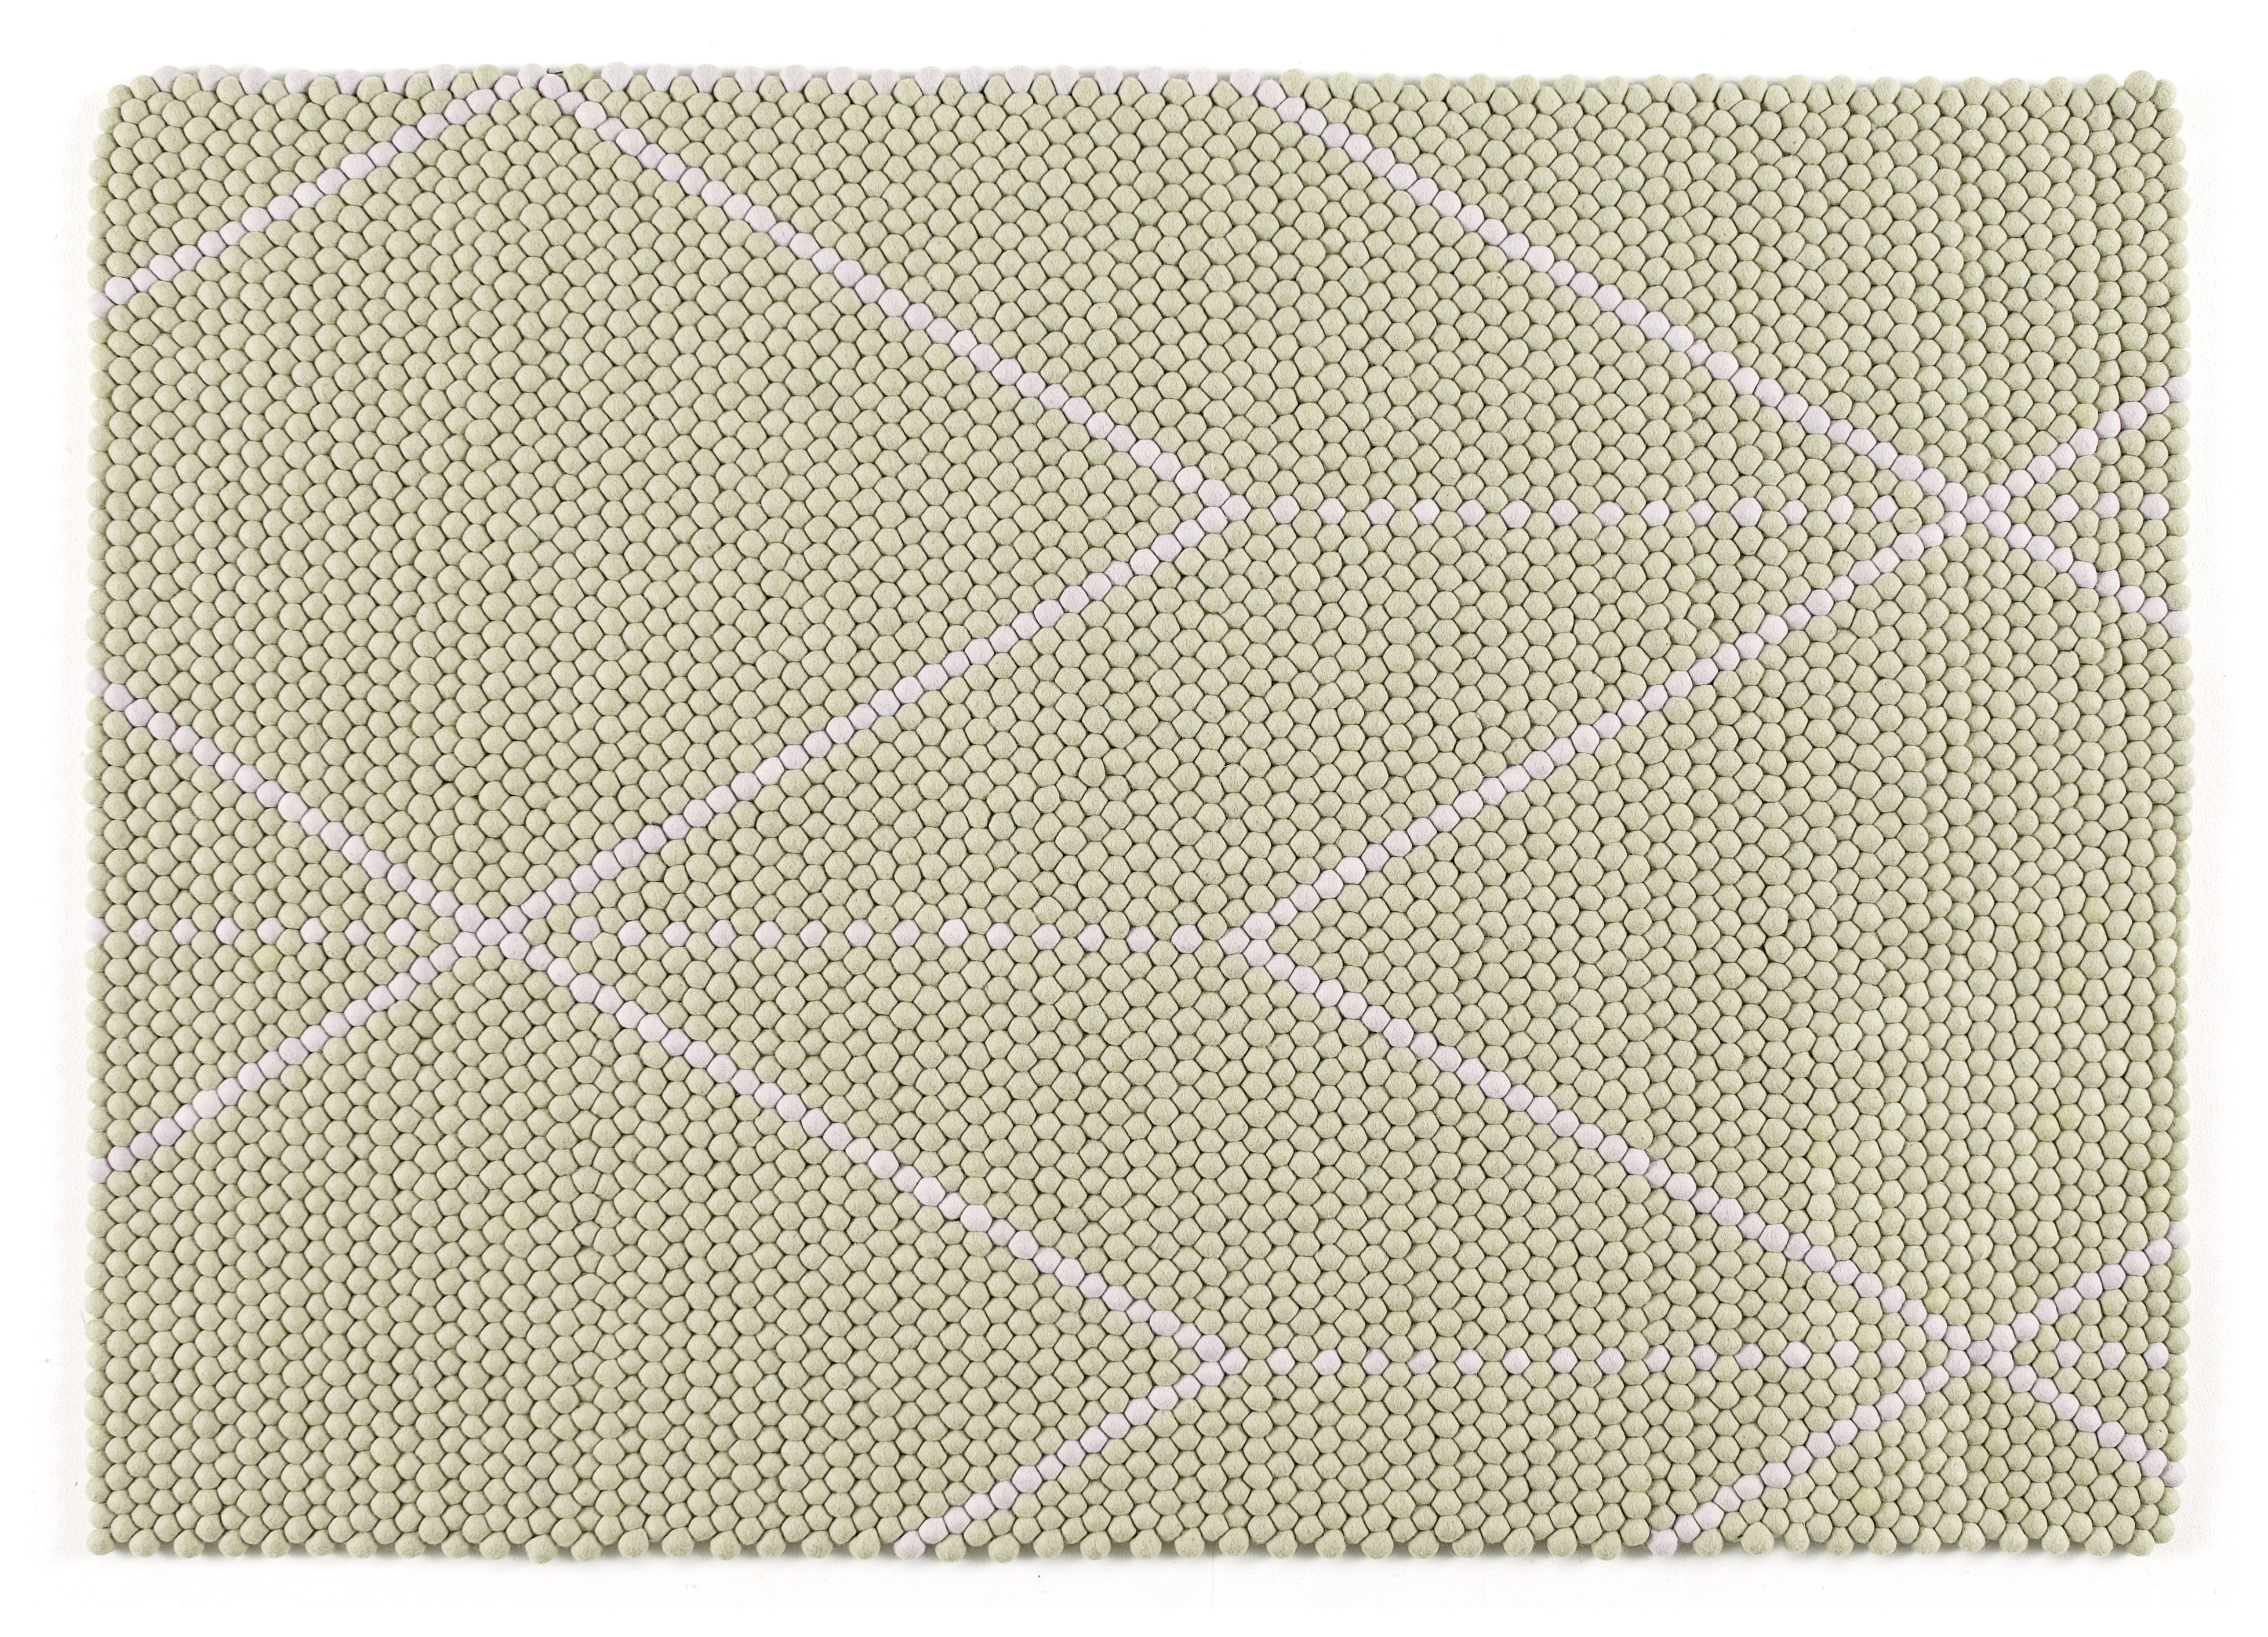 tapis s b dot 170 x 120 cm mauve vert clair hay. Black Bedroom Furniture Sets. Home Design Ideas